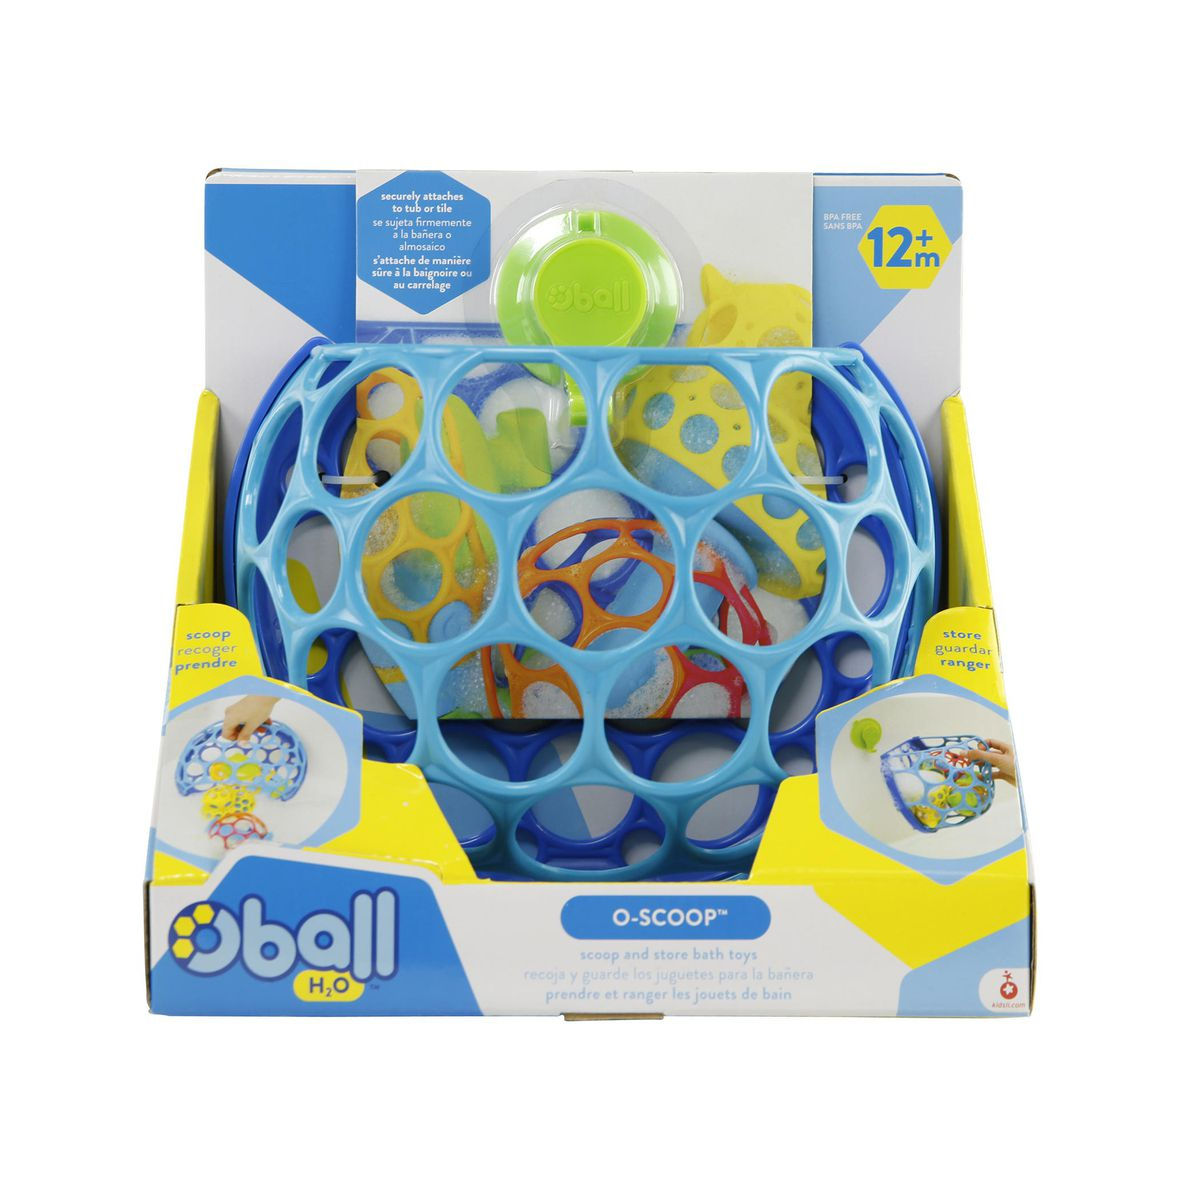 Oball - Scoop Bath Toy | Buy Online in South Africa | takealot.com